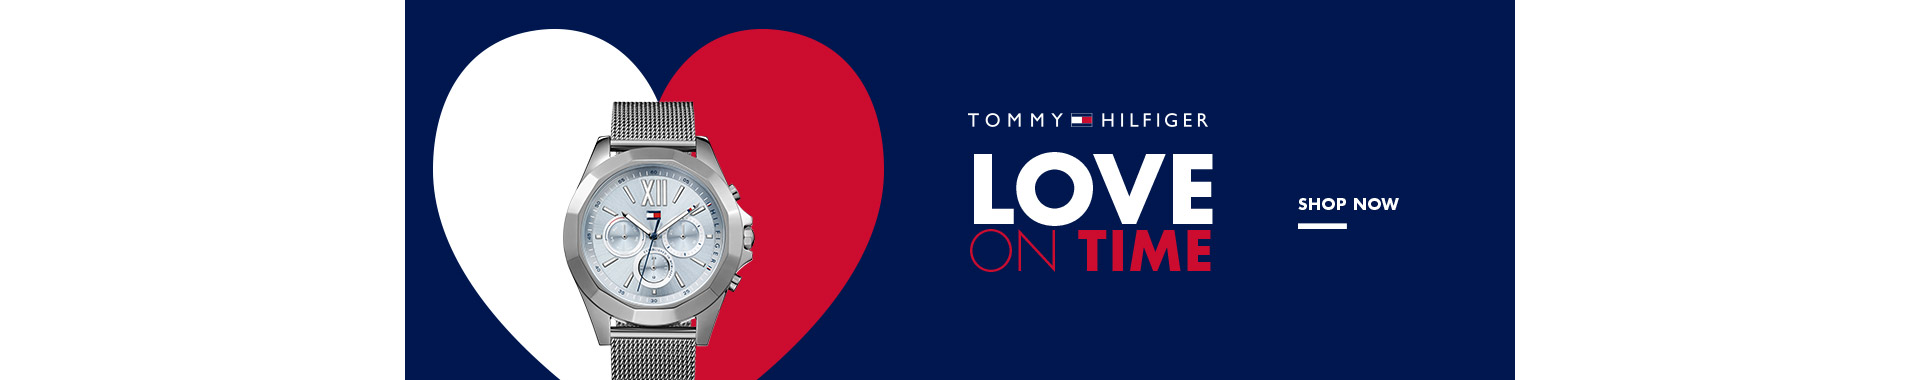 banner Tommy Love on time